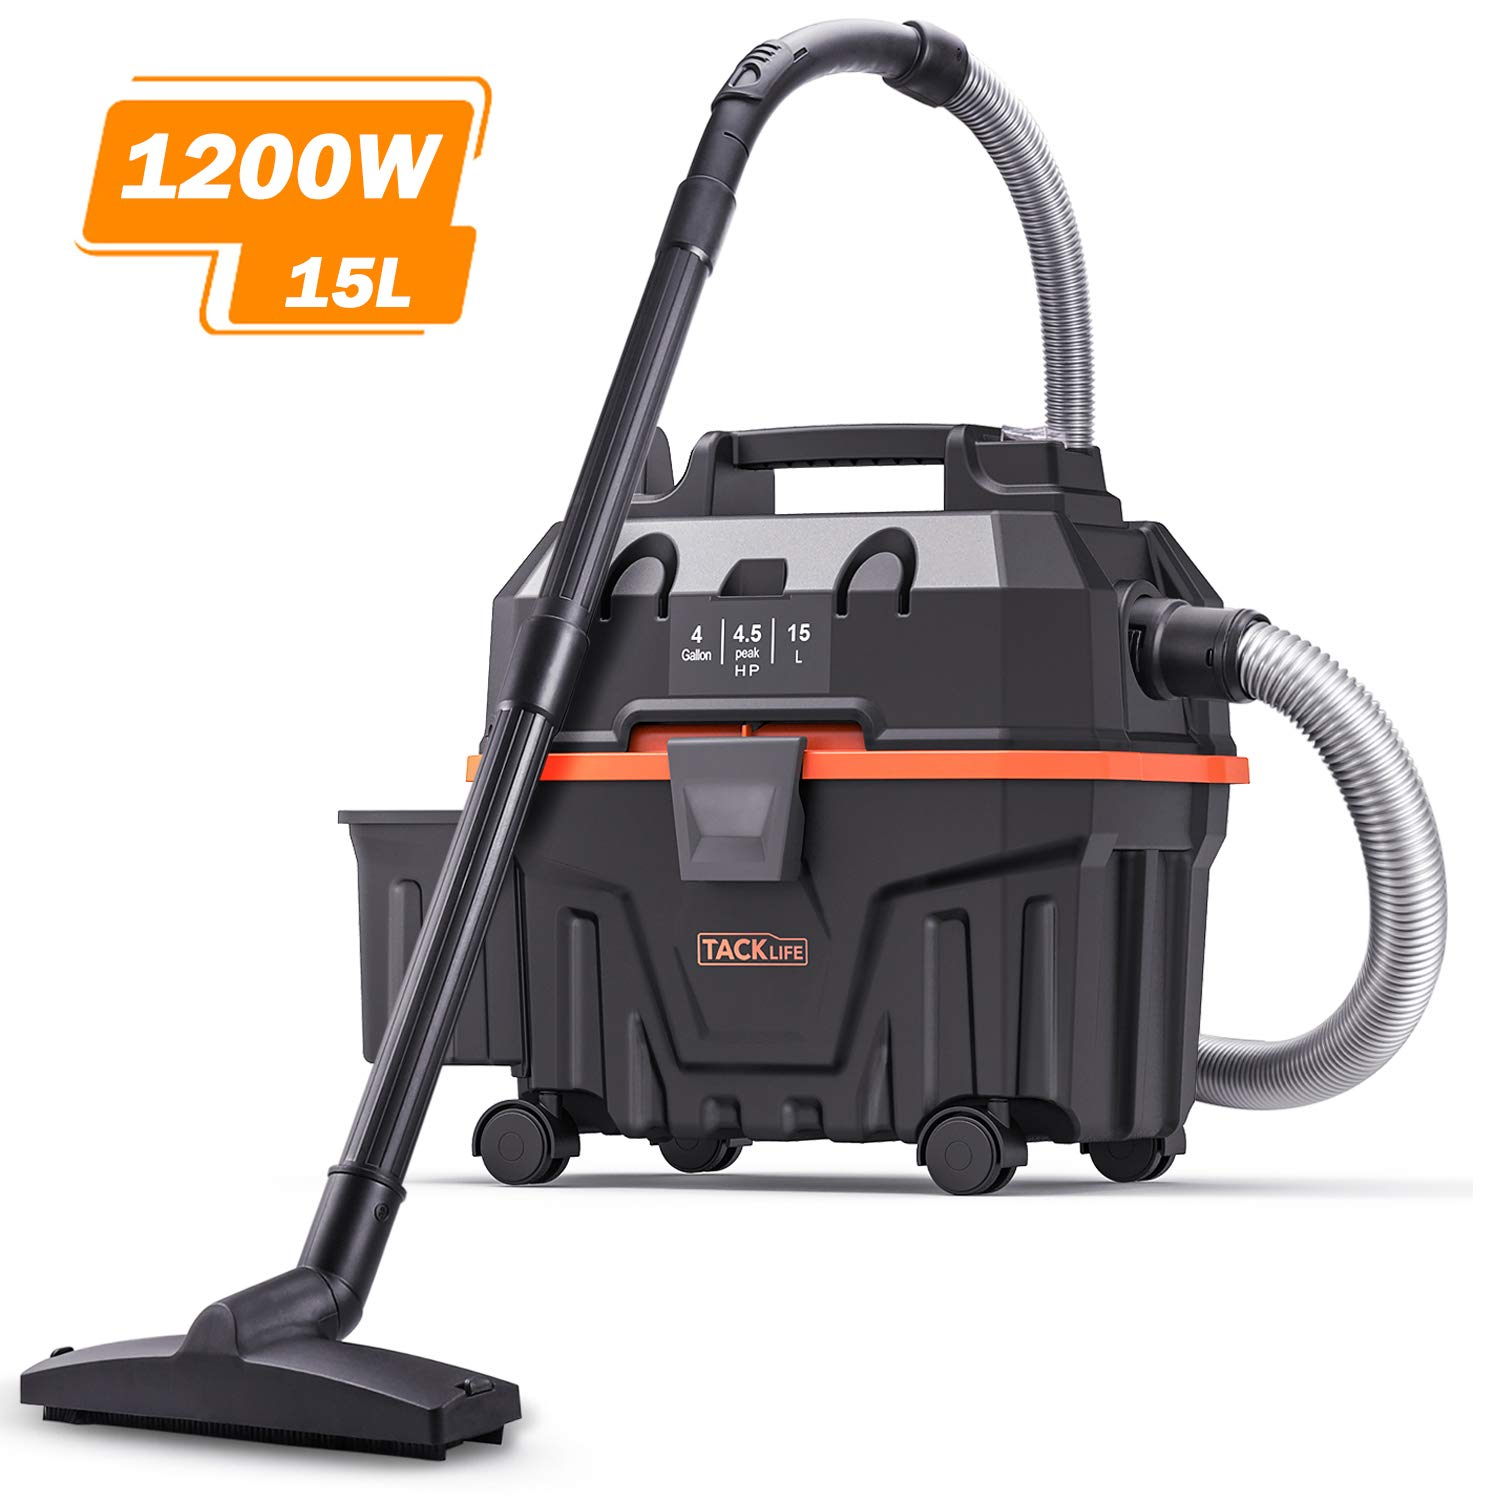 Wet and Dry Vacuum, TACKLIFE 4.5 Gallon 6 Peak Hp Bagless Wet Dry Vacuum, Wet Suction/Dry Suction/Blowing 3 in 1 Function, Suitable for Indoor and Outdoor Use, PVC01B by TACKLIFE